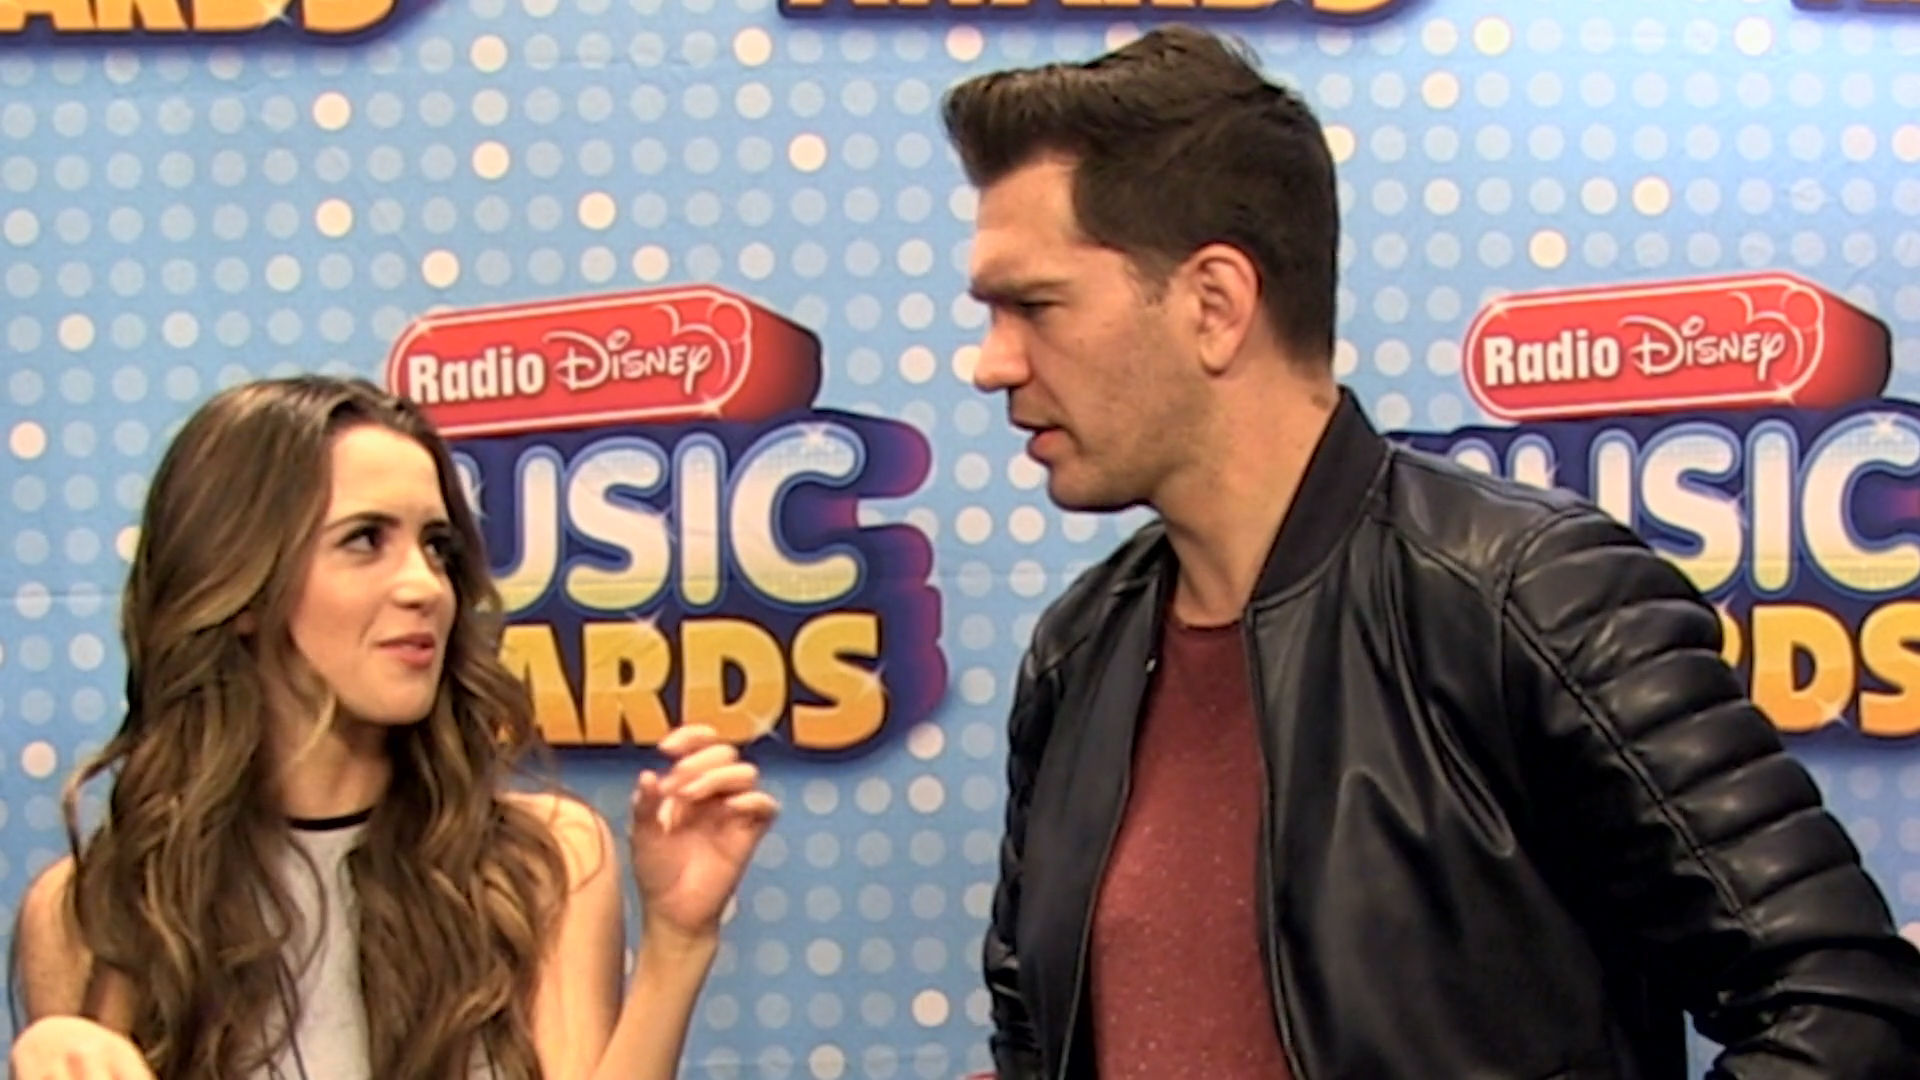 Andy Grammer and Laura Marano Make Up RDMA Dance Moves | Radio Disney Music Awards | Radio Disney